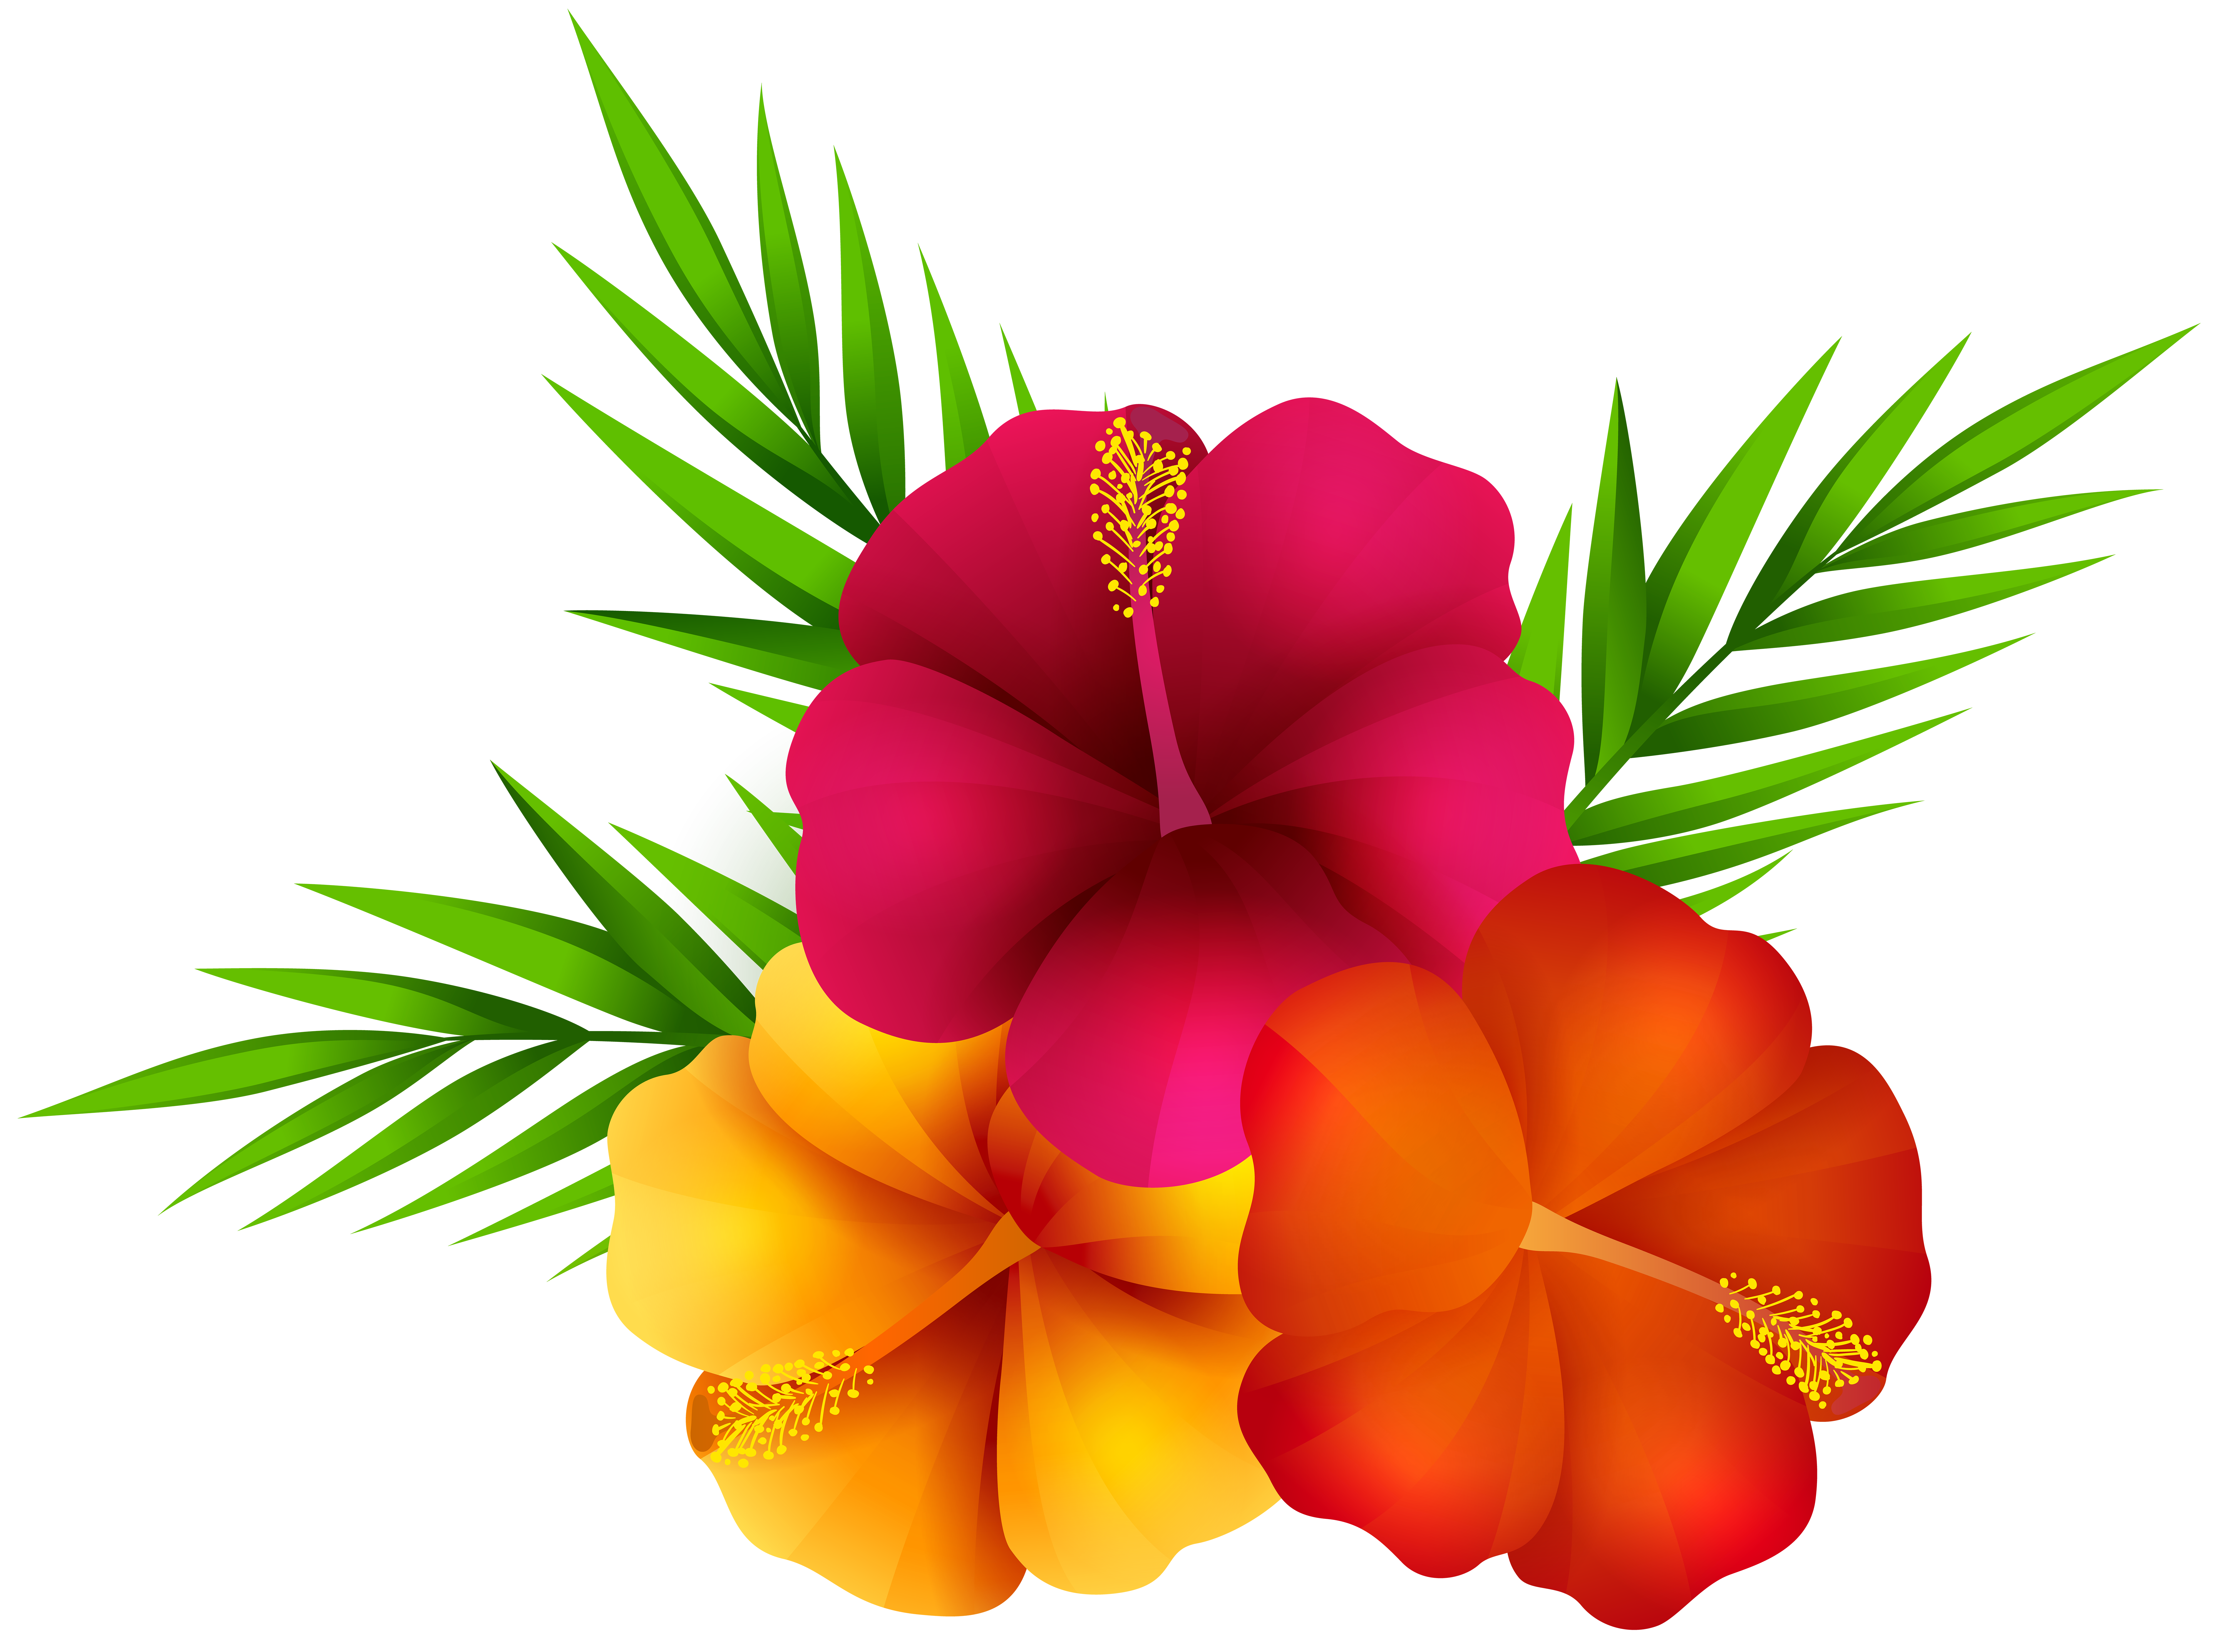 Flowers png. Exotic clip art image